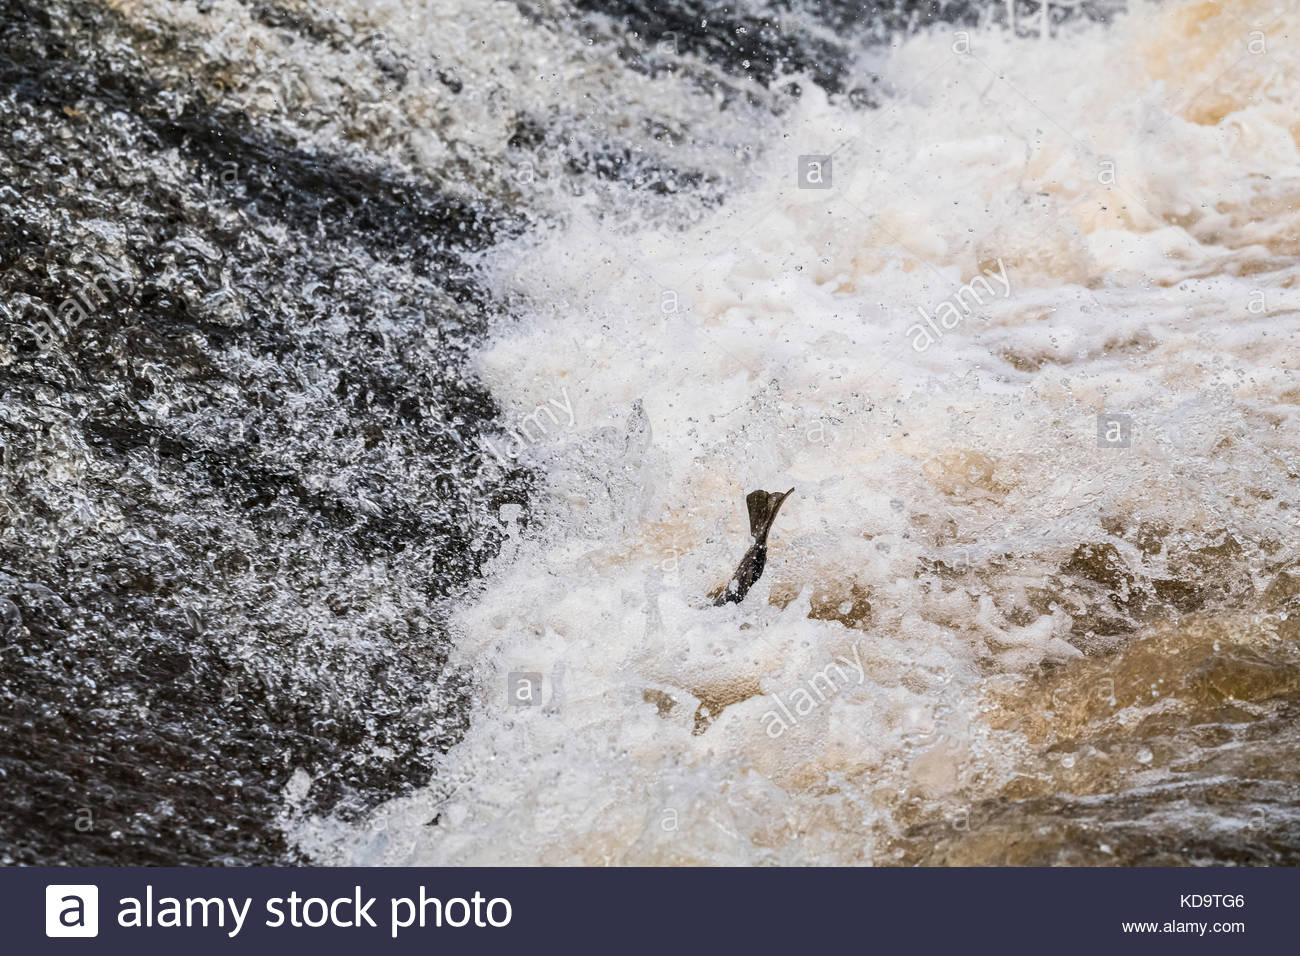 Selkirk, Scottish Borders, UK. 11th Oct, 2017. An Atlantic Salmon's (Salmo salar) tail is seen in the rapids - Stock Image